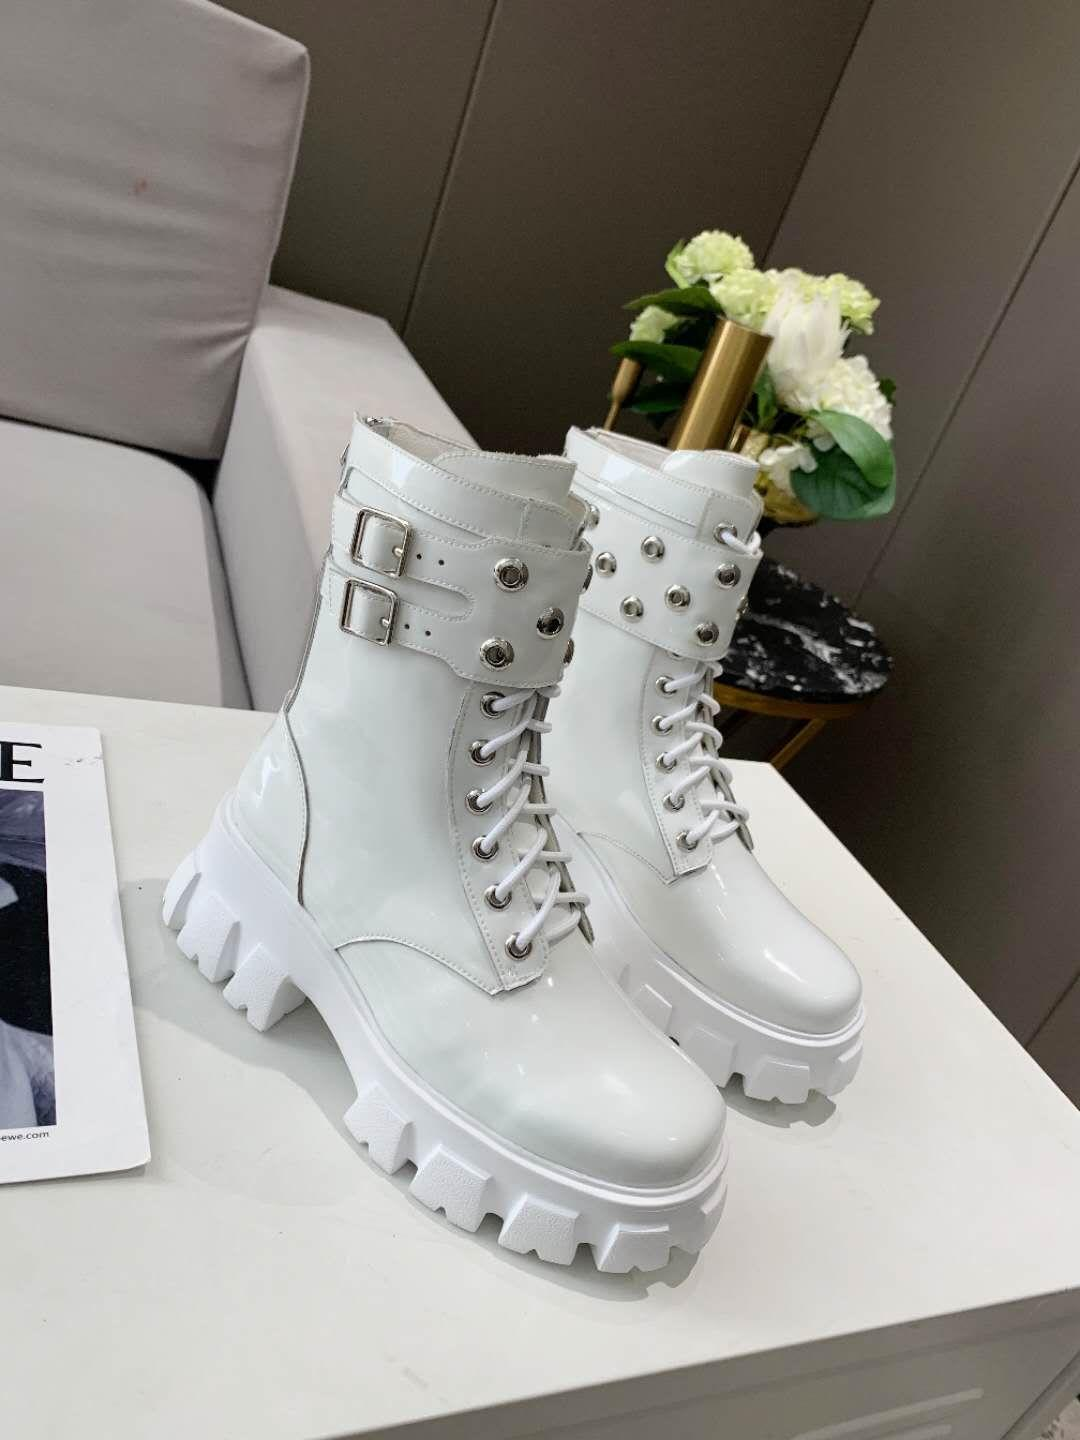 Best-Selling High-Quality Designer Women Boots Genuine Leather Mid-Calf Lace-Up Buckle Zipper Metal Decoration Brand Comfortable Shoes